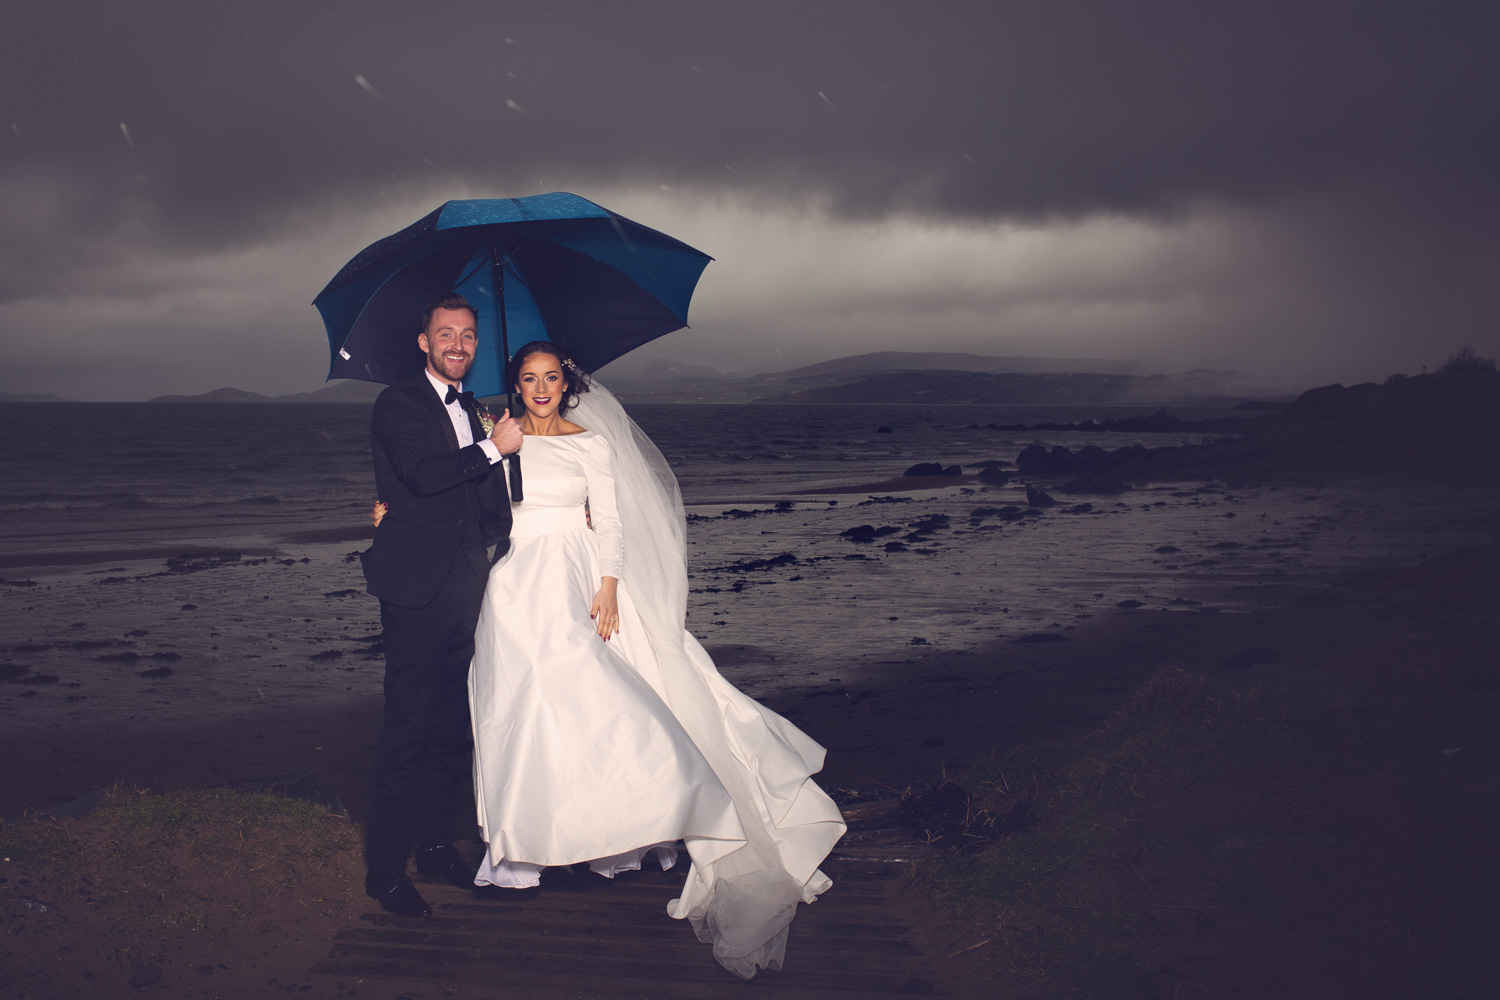 Mark_Barnes_Northern_Ireland_wedding_photographer_Innishowen_Gateway_Donegal_Wedding_photography_Donegal_wedding_photographer-39.jpg